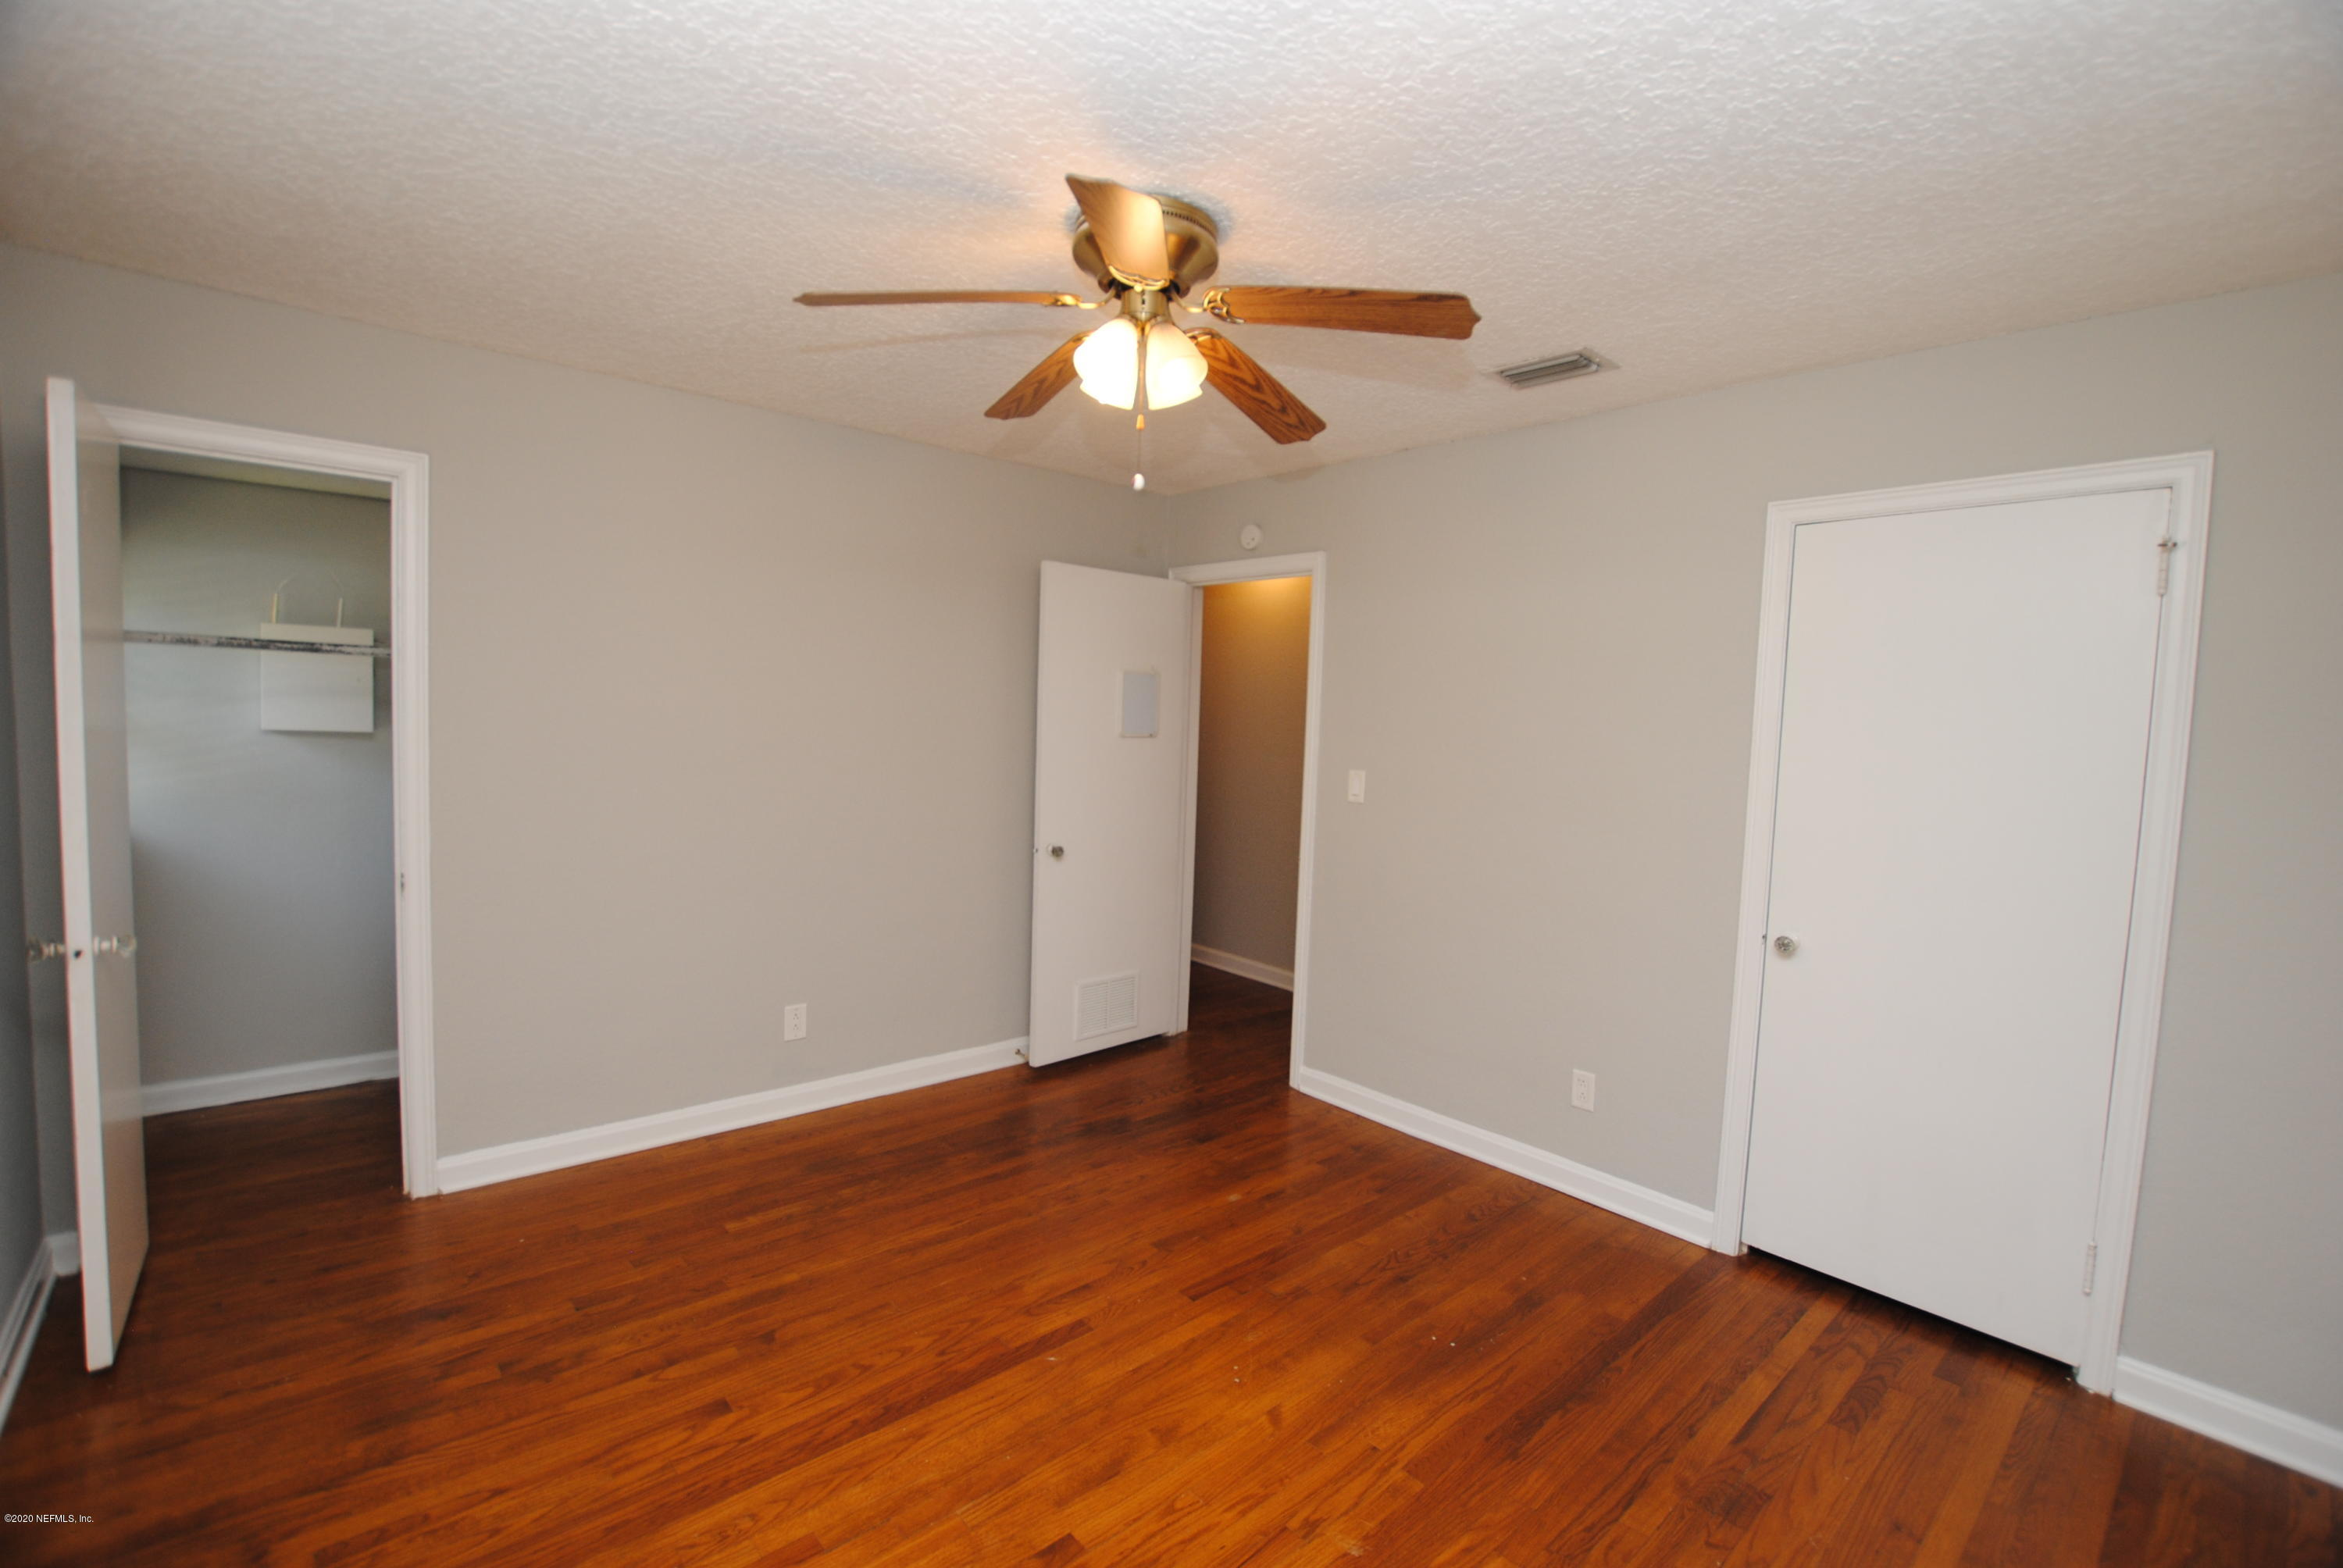 2946 DOWNING, JACKSONVILLE, FLORIDA 32203, 2 Bedrooms Bedrooms, ,1 BathroomBathrooms,Rental,For Rent,DOWNING,1074398